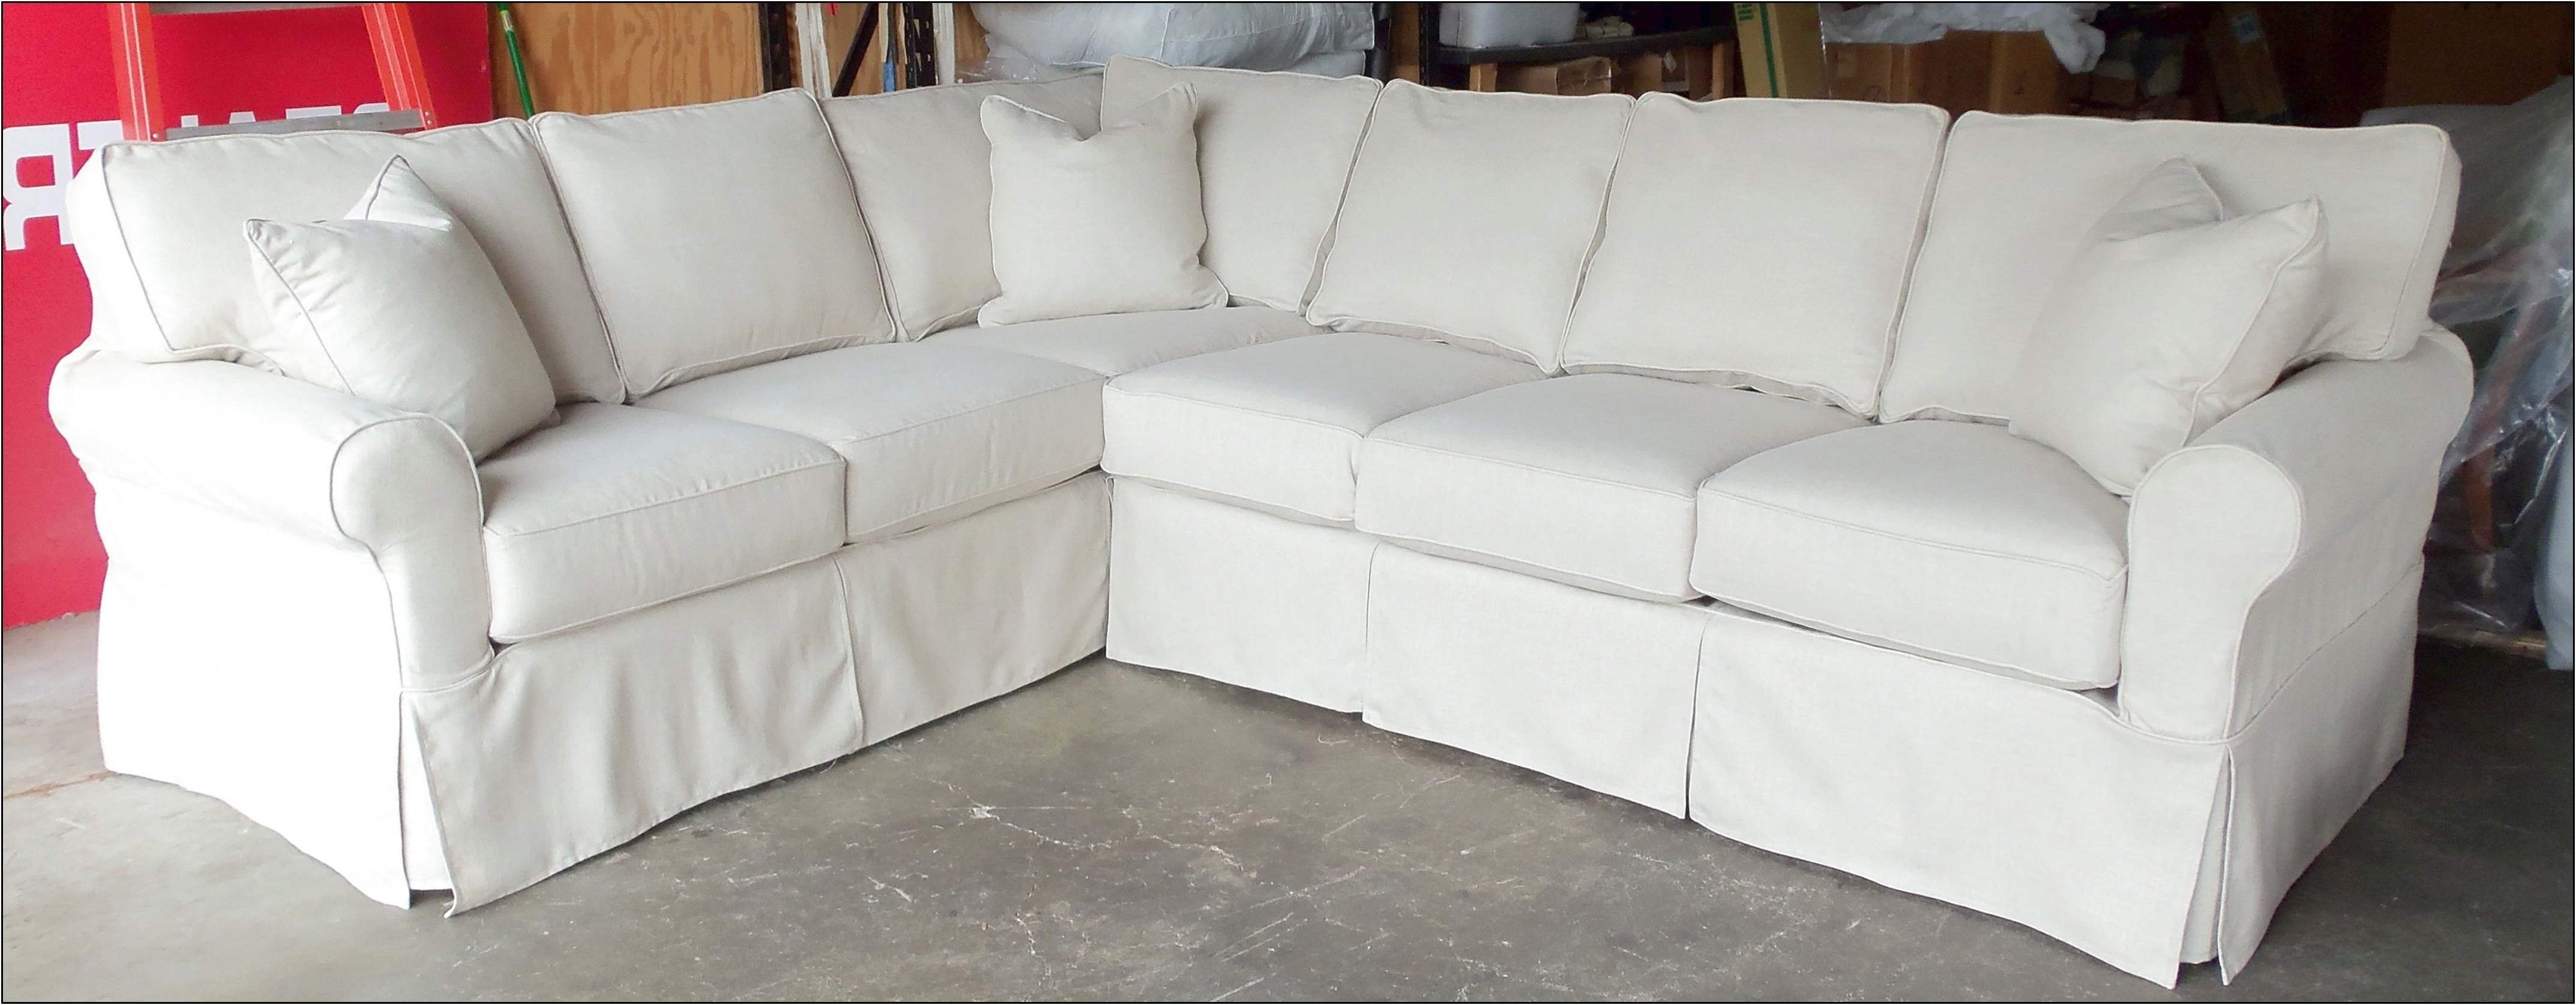 Abowloforanges Pertaining To Removable Covers Sectional Sofas (View 1 of 20)